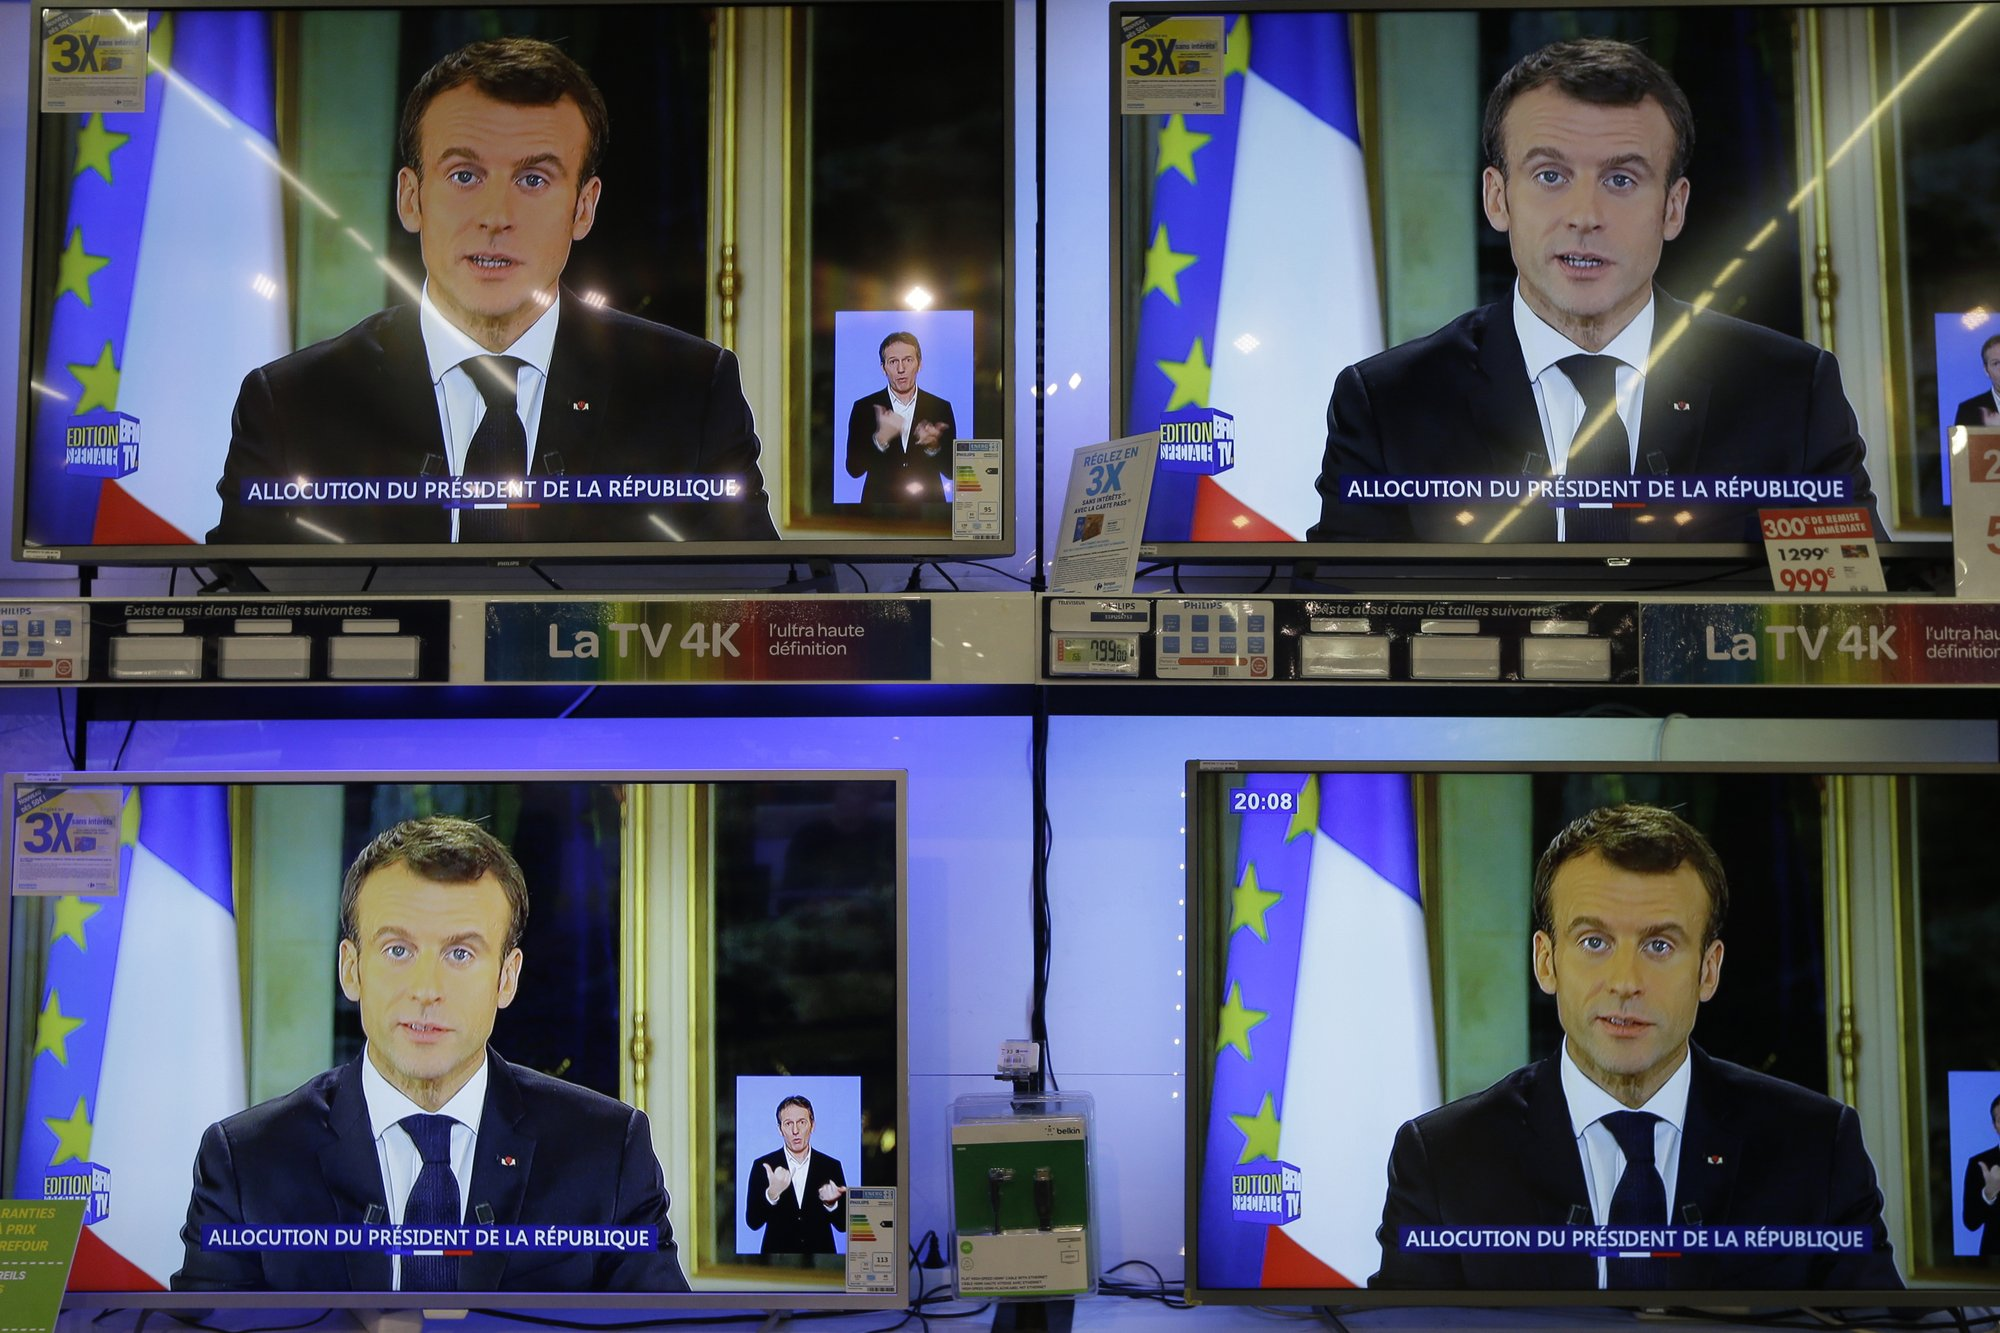 Macron vows tax cuts, pay rise; will France's anger subside?